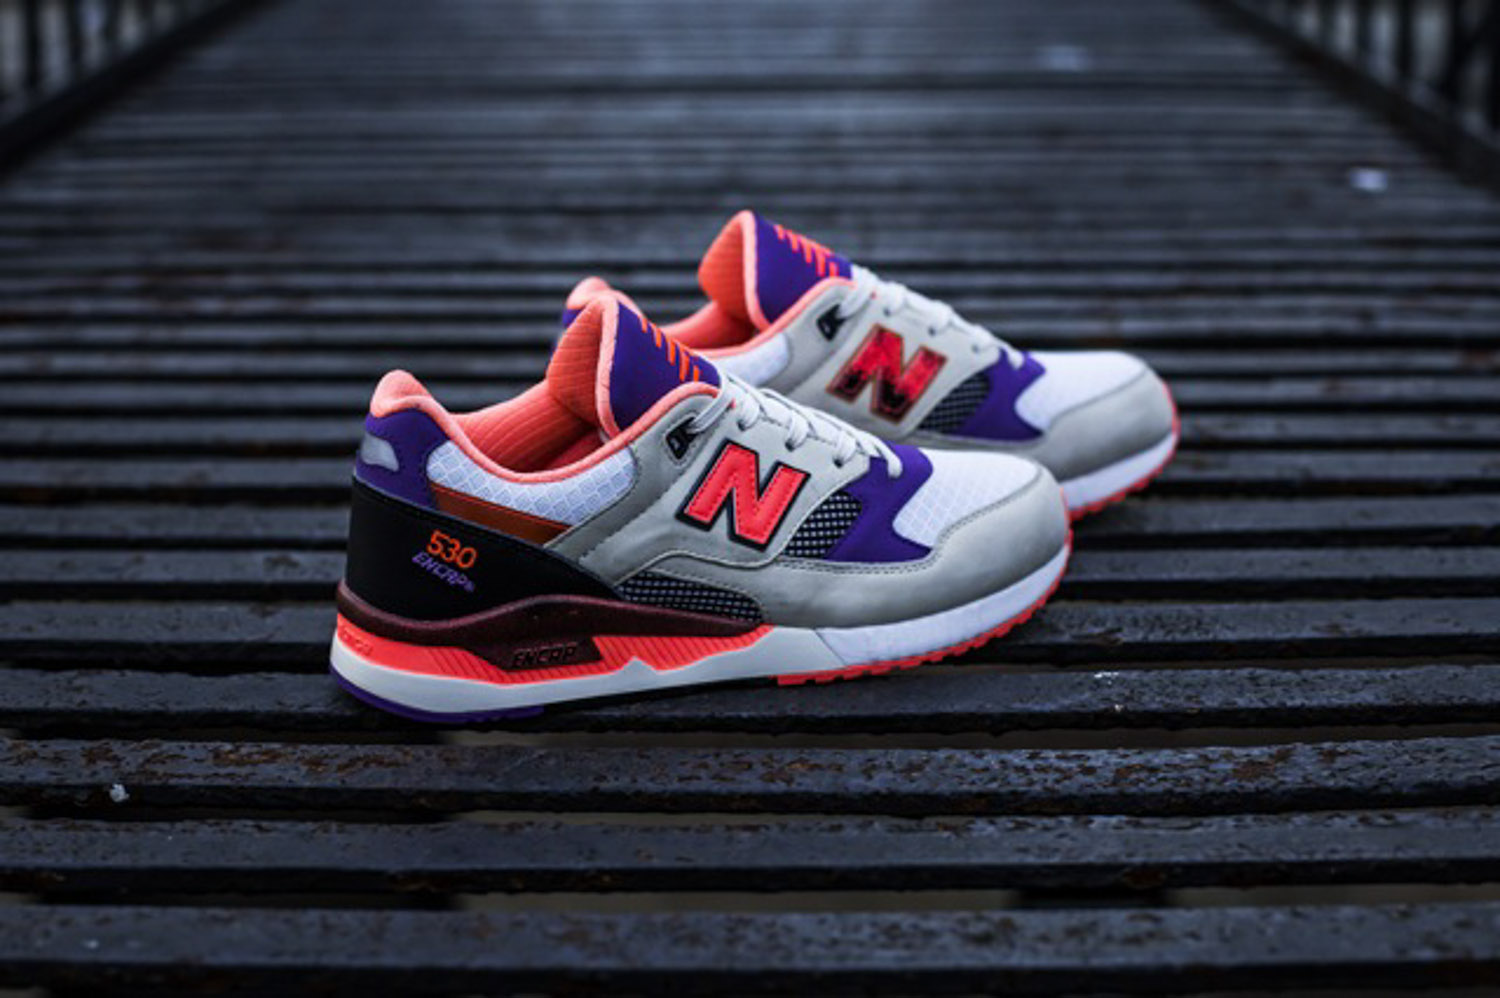 New Balance x West NYC 530 Project530 7